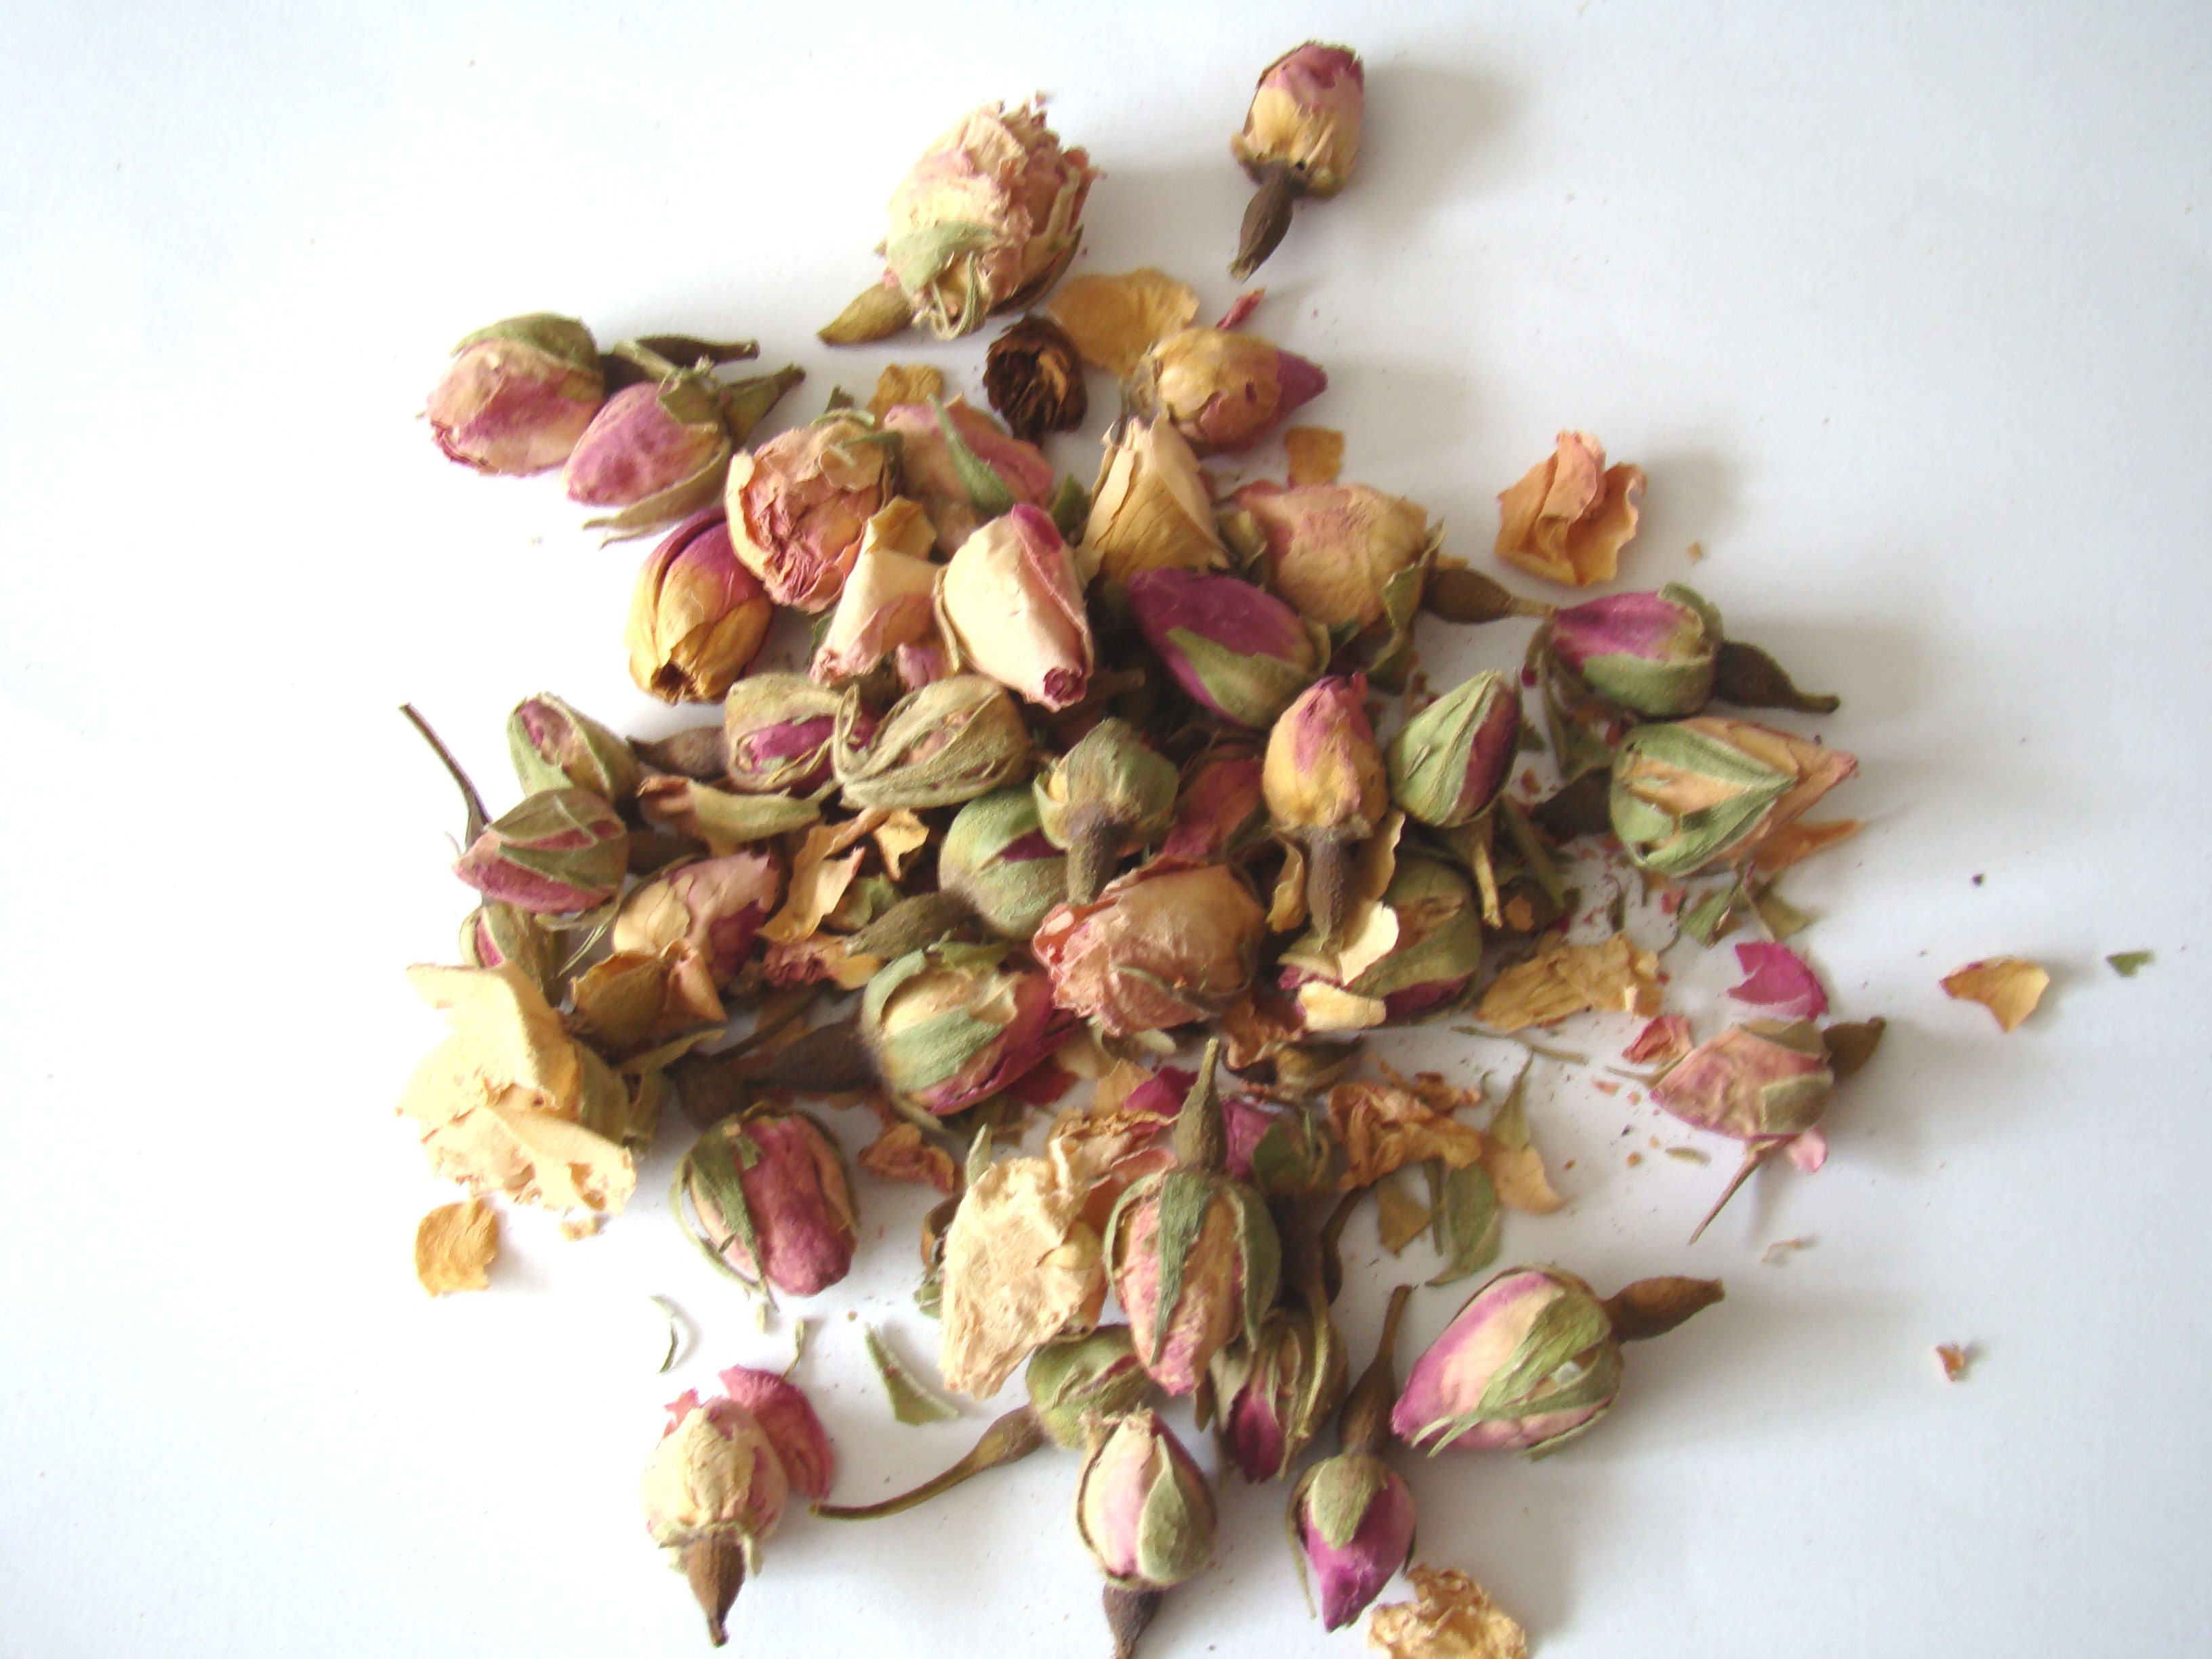 Rose buds (whole) pink (50g)